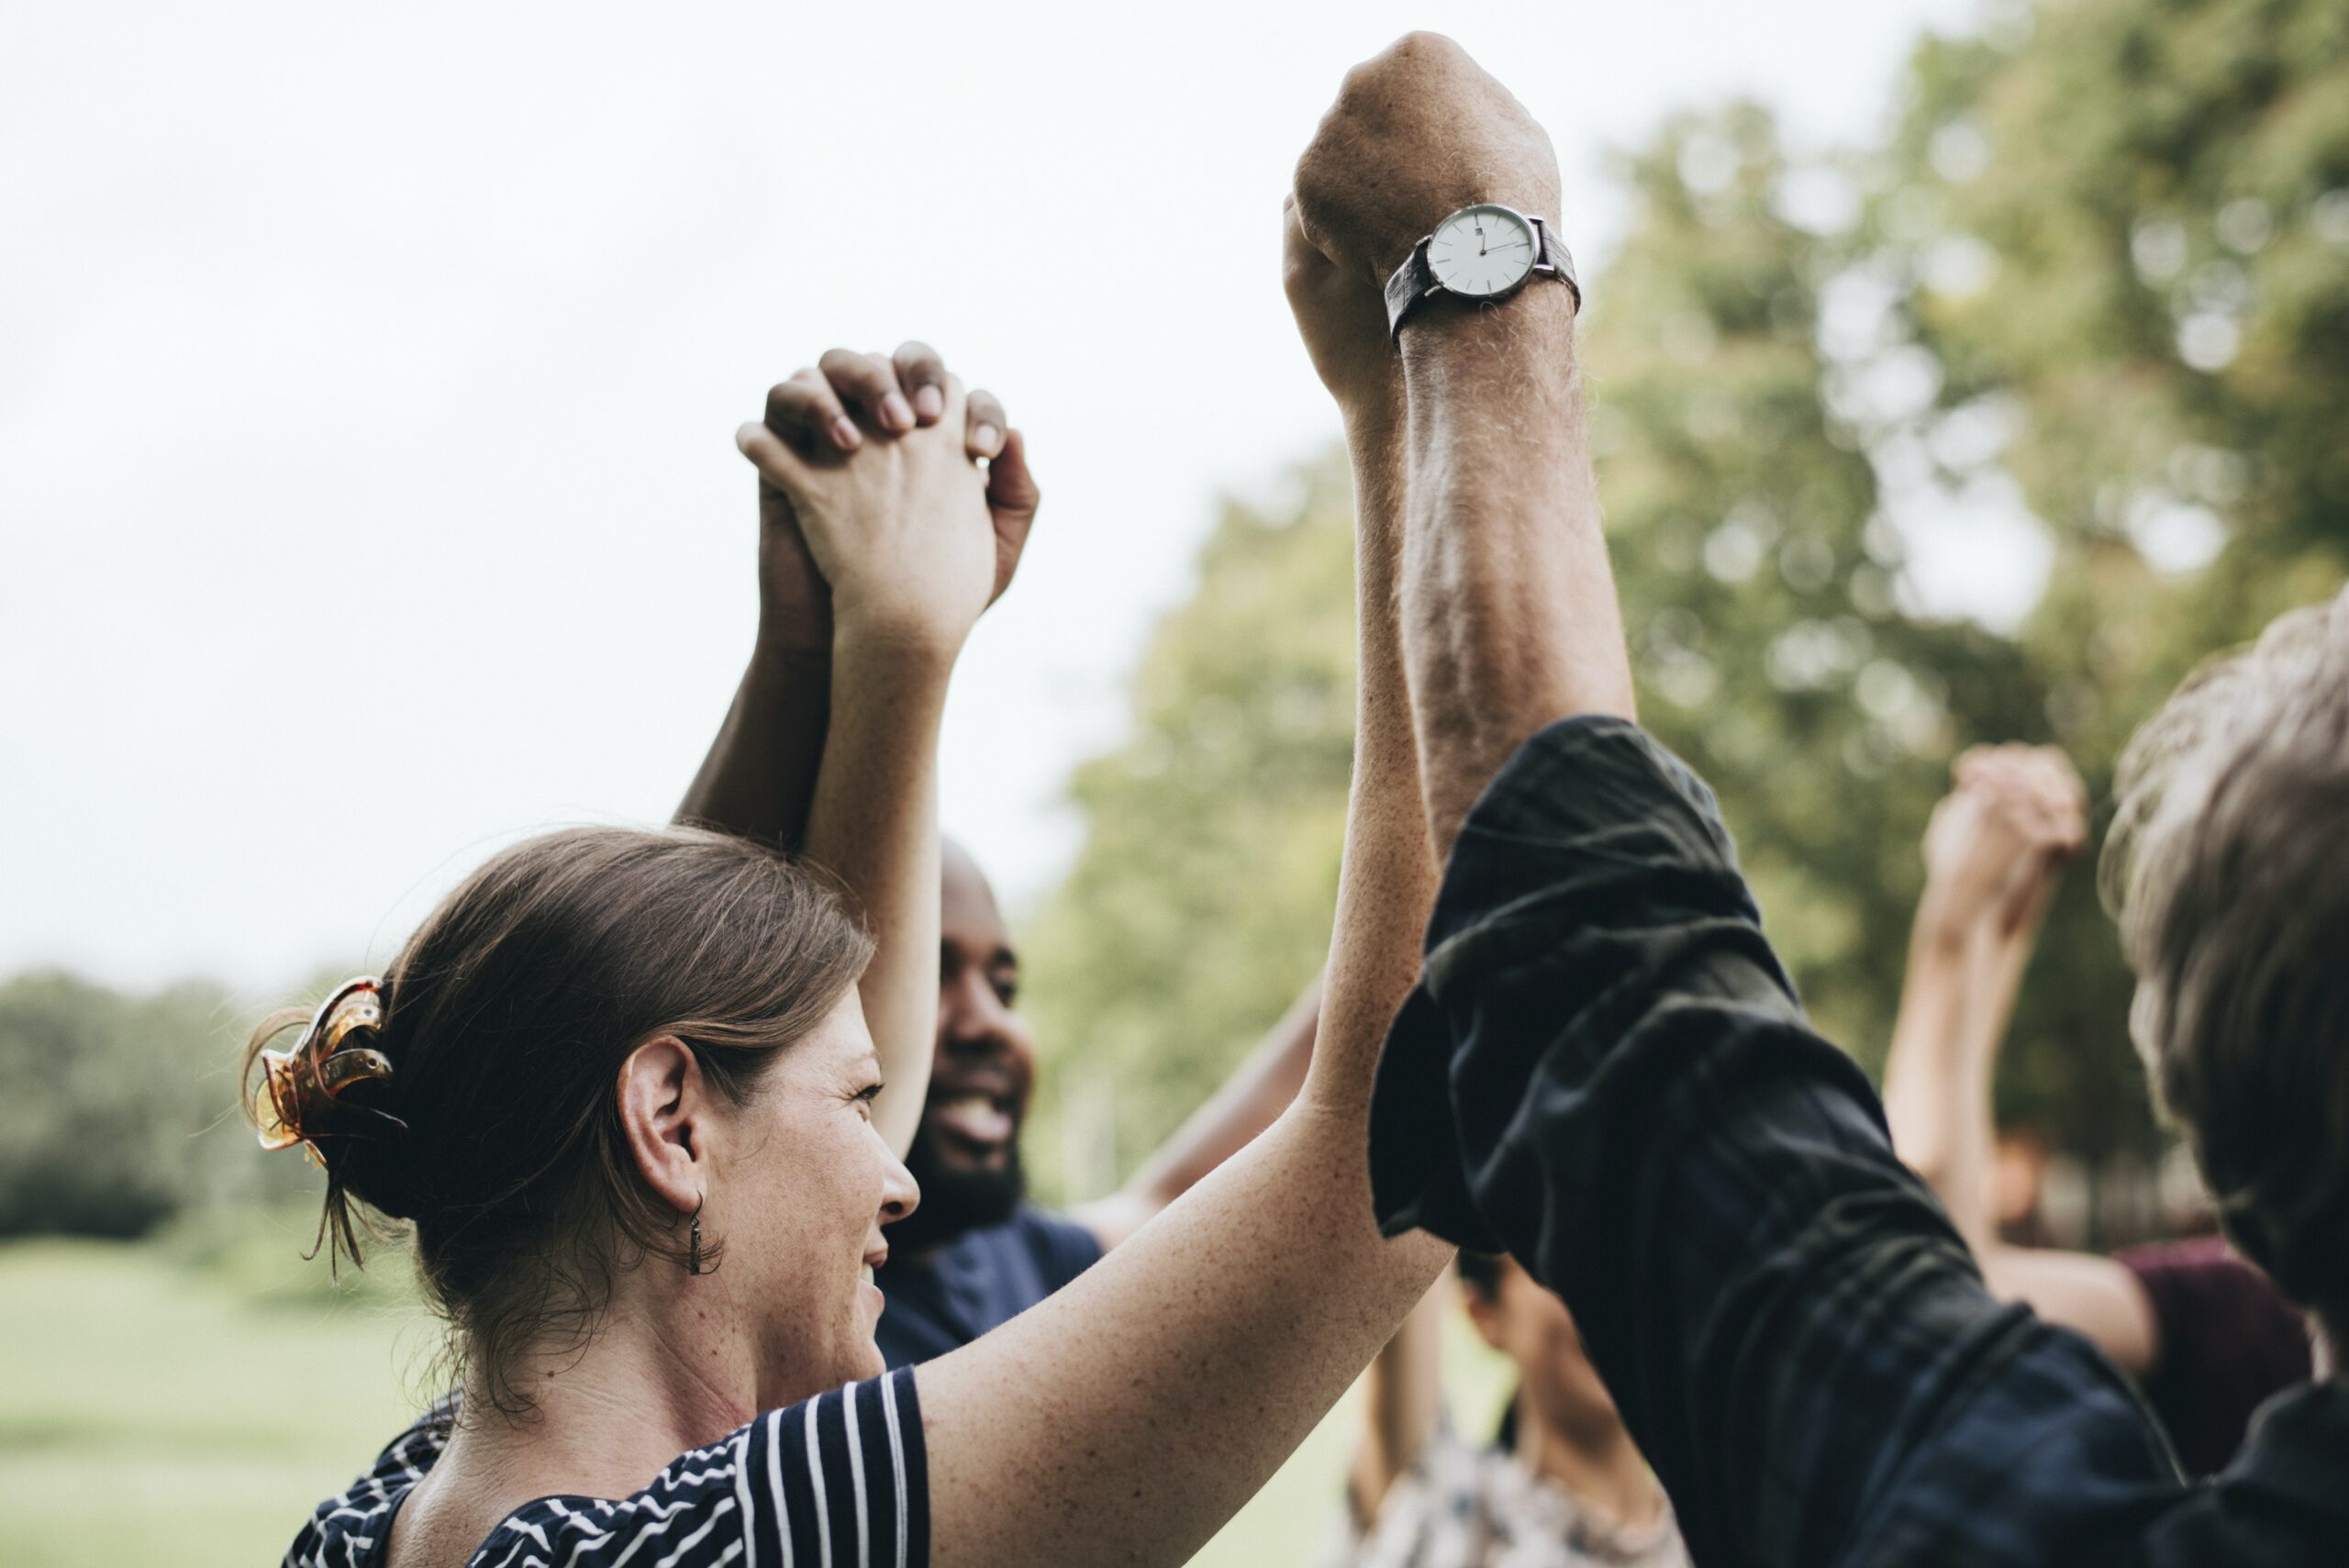 Group of people with intertwined hands in the air